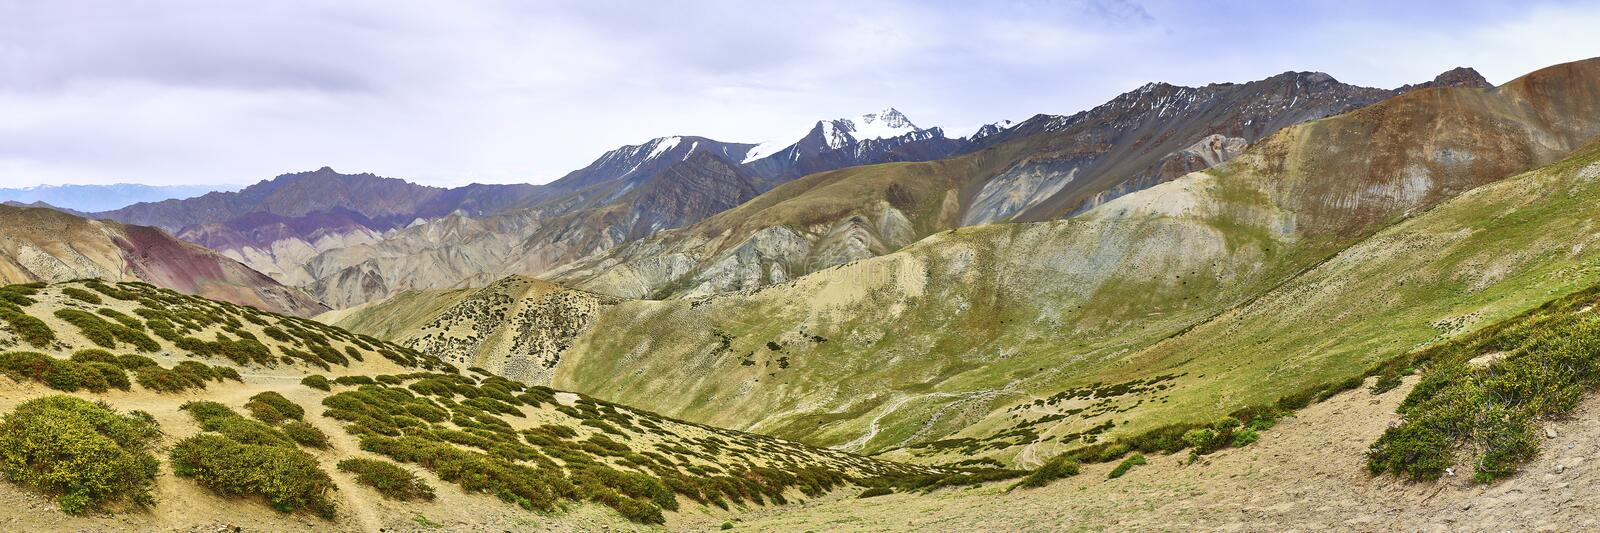 Beautiful colorful panoramic landscape taken from a Gandala pass in Himalaya mountains in Ladakh, India royalty free stock image